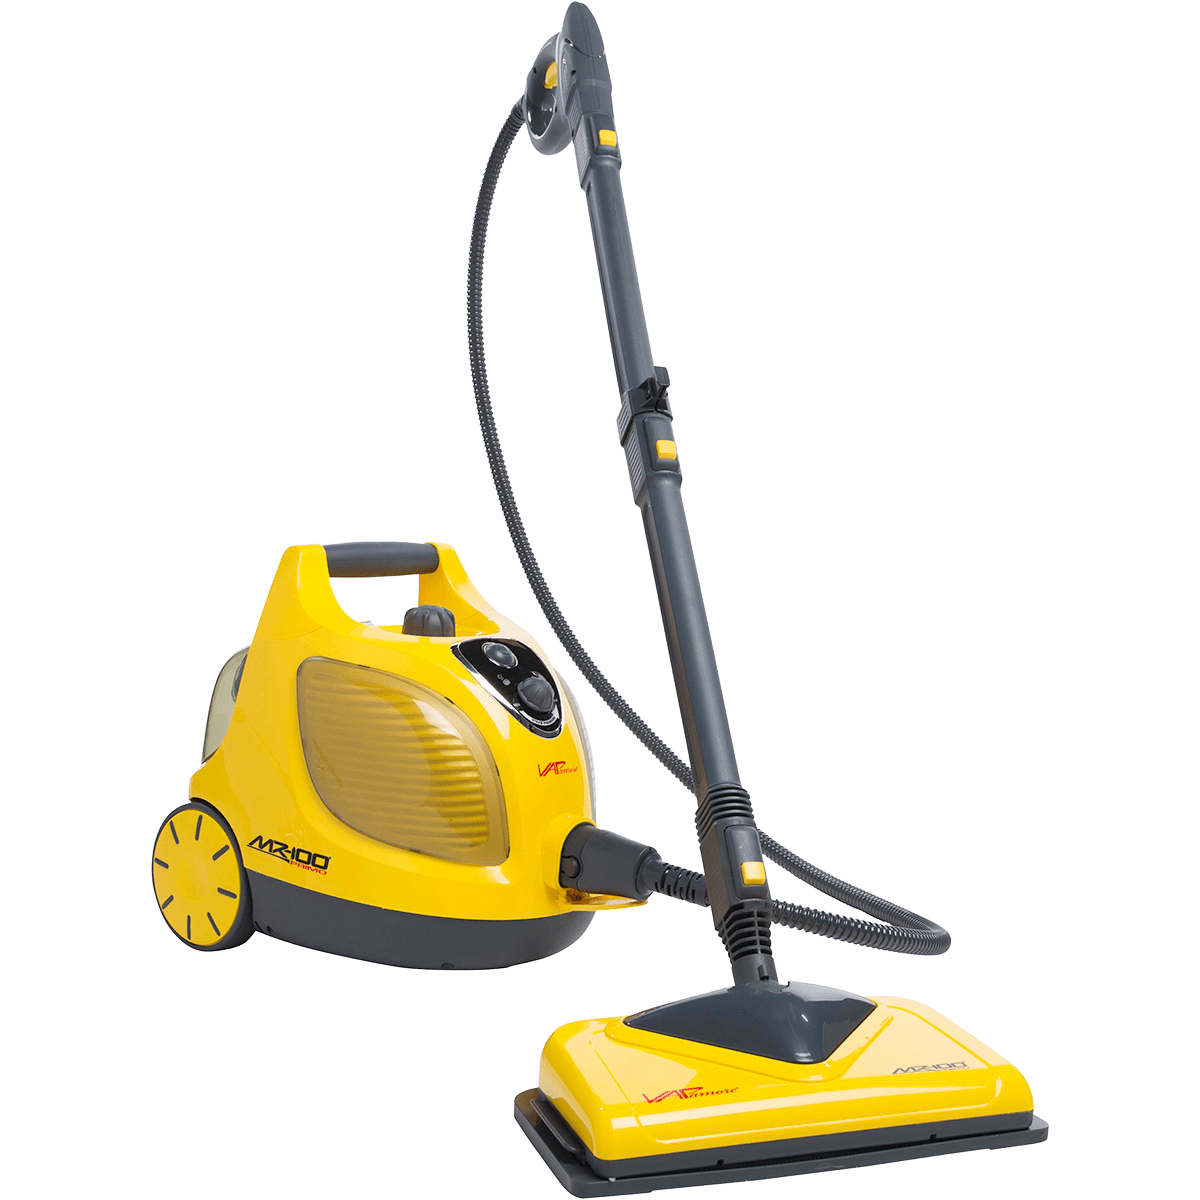 Vapamore MR100 Primo Steam Cleaner Free Shipping